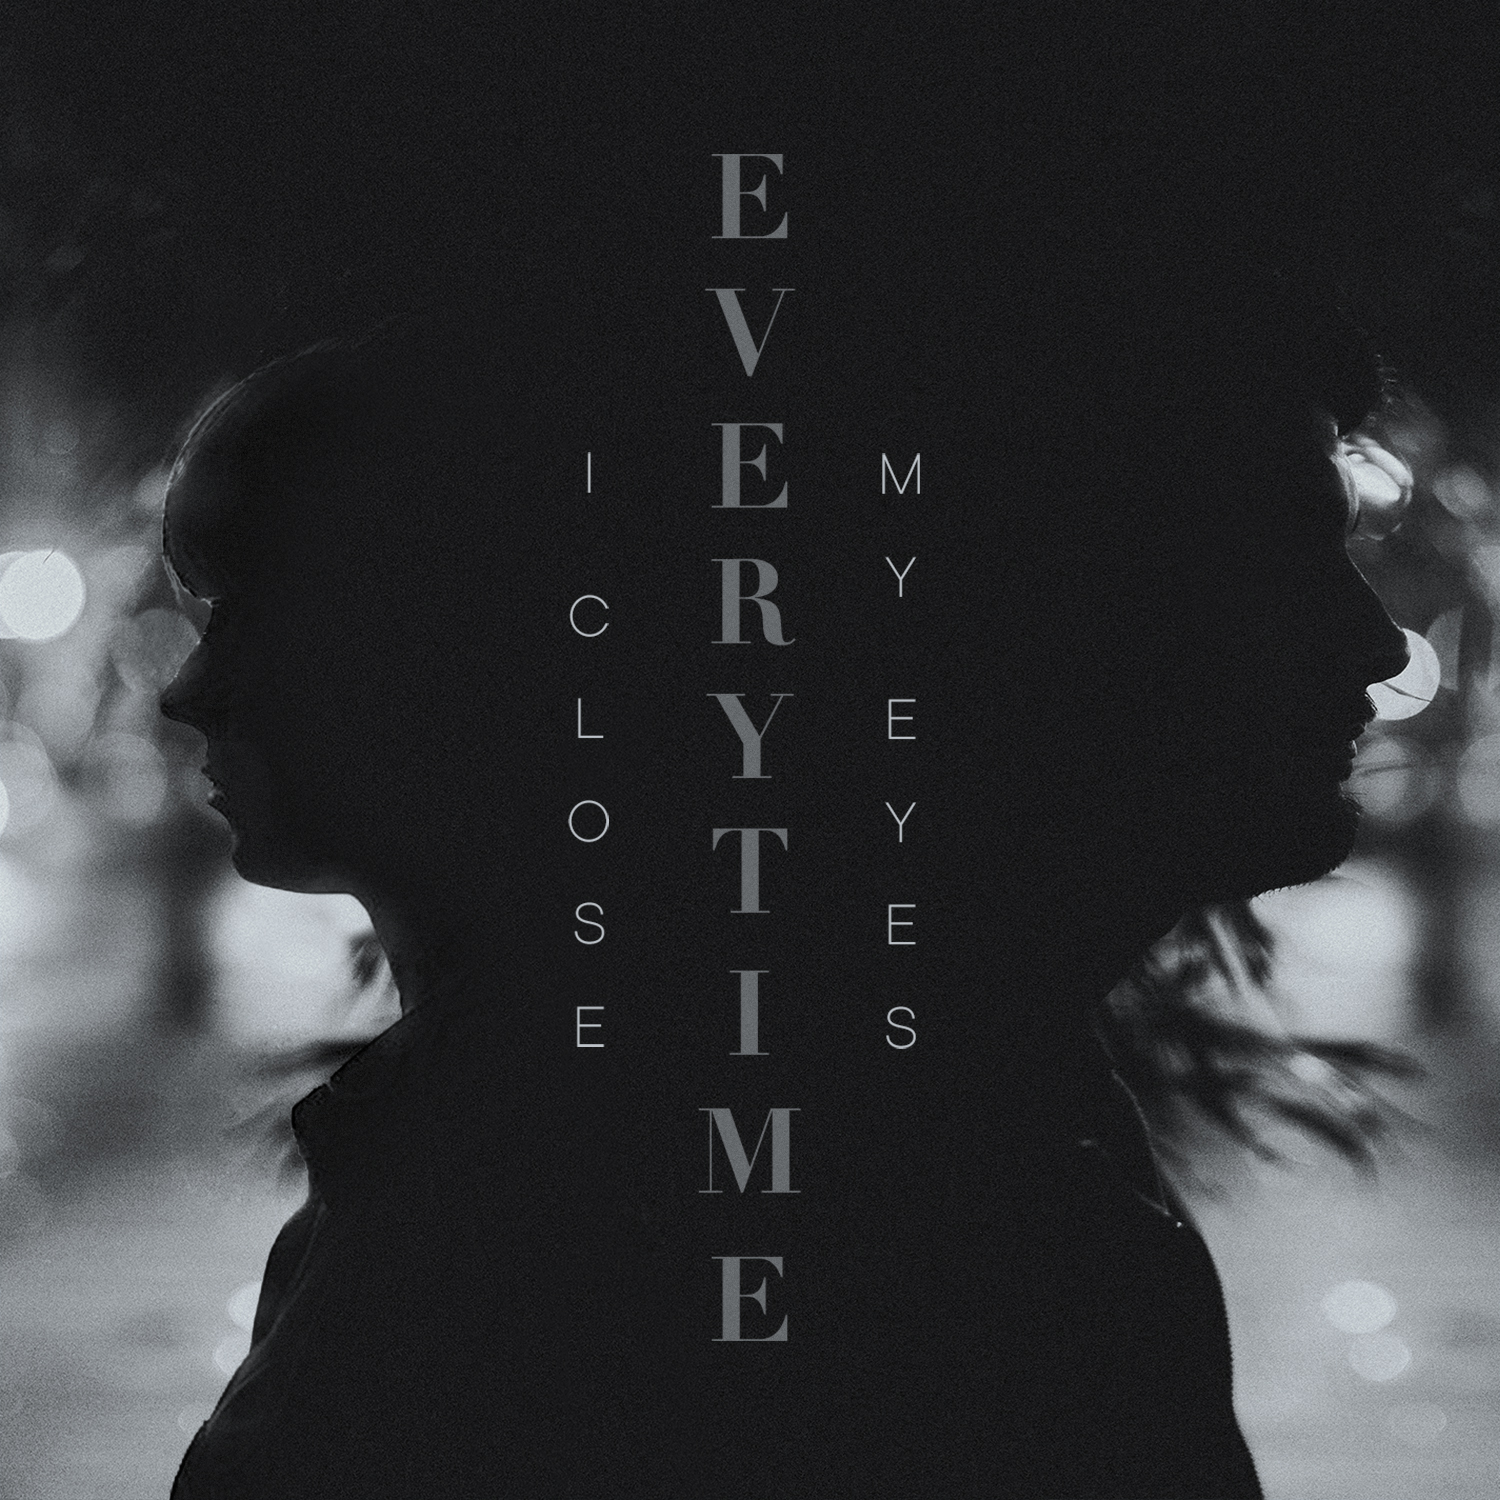 A_New_Normal-Everytime-FINAL-1500.jpg